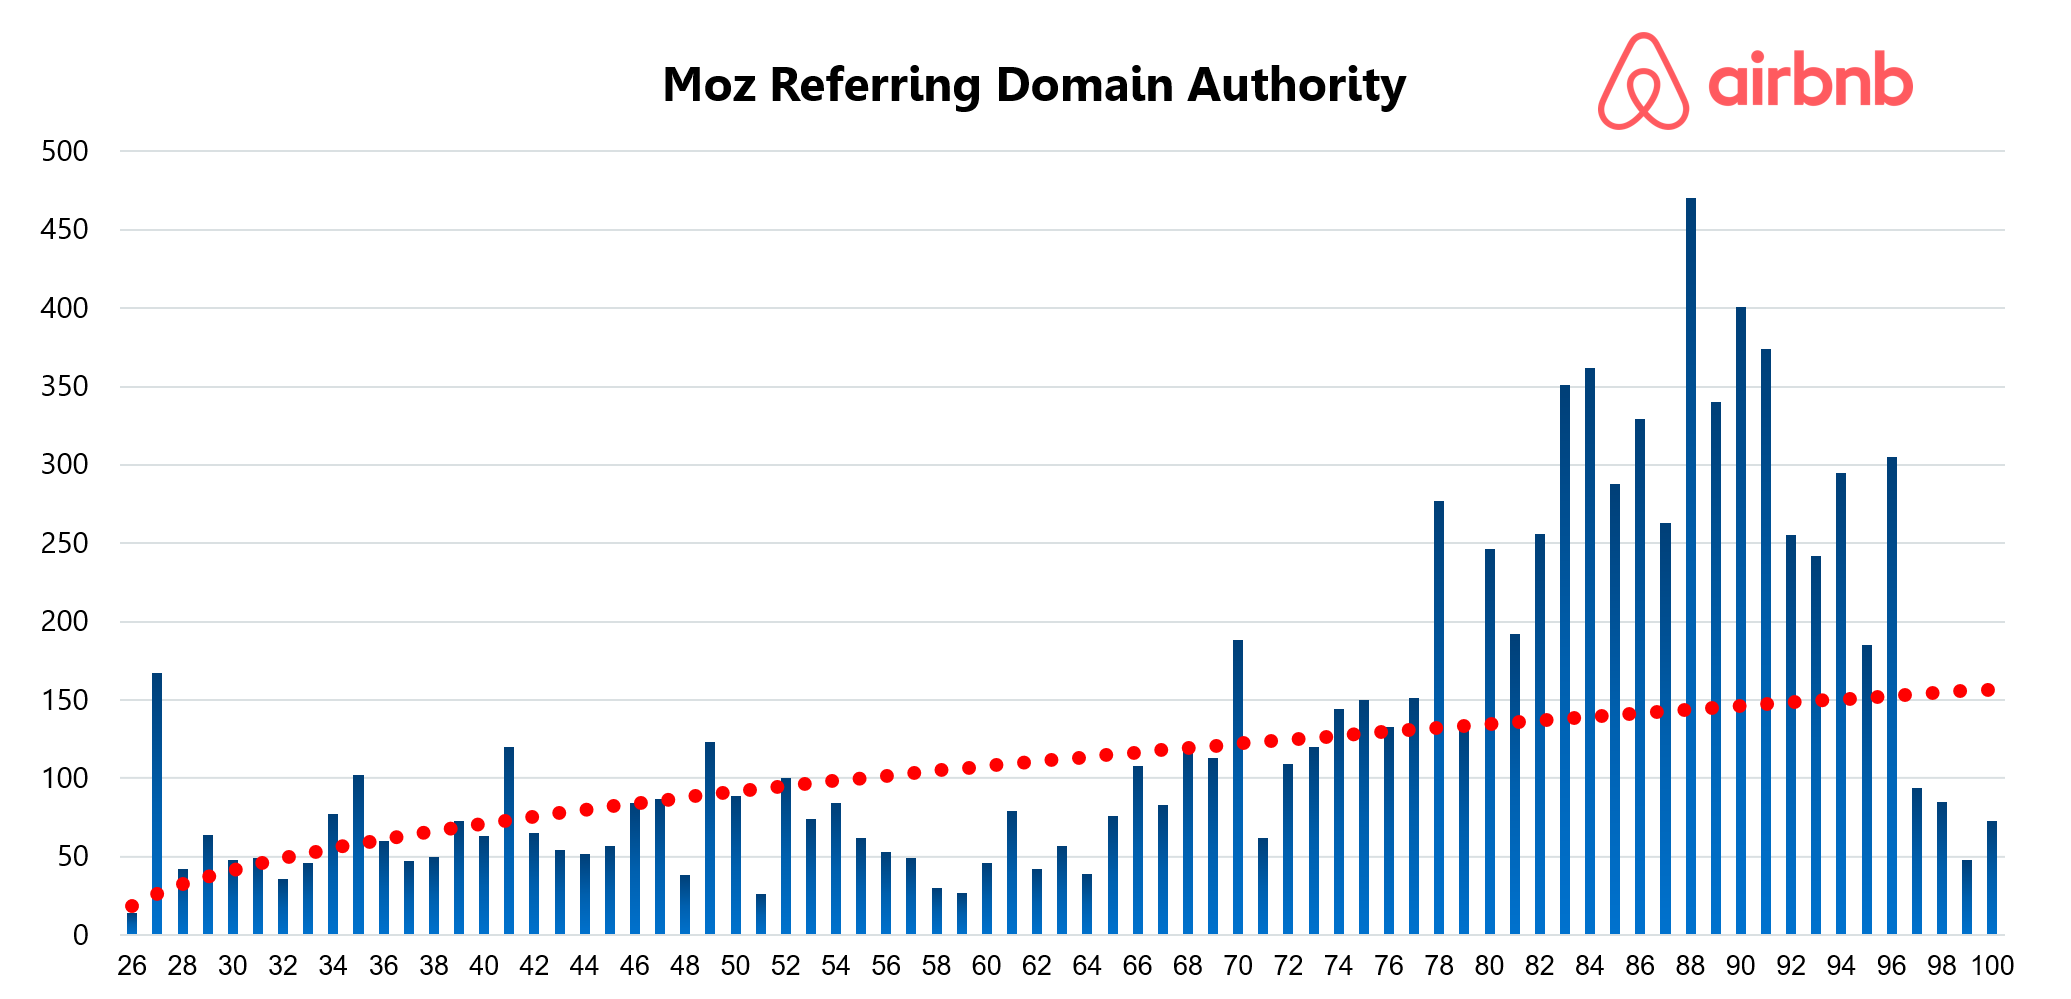 Airbnb Moz referring domain authority